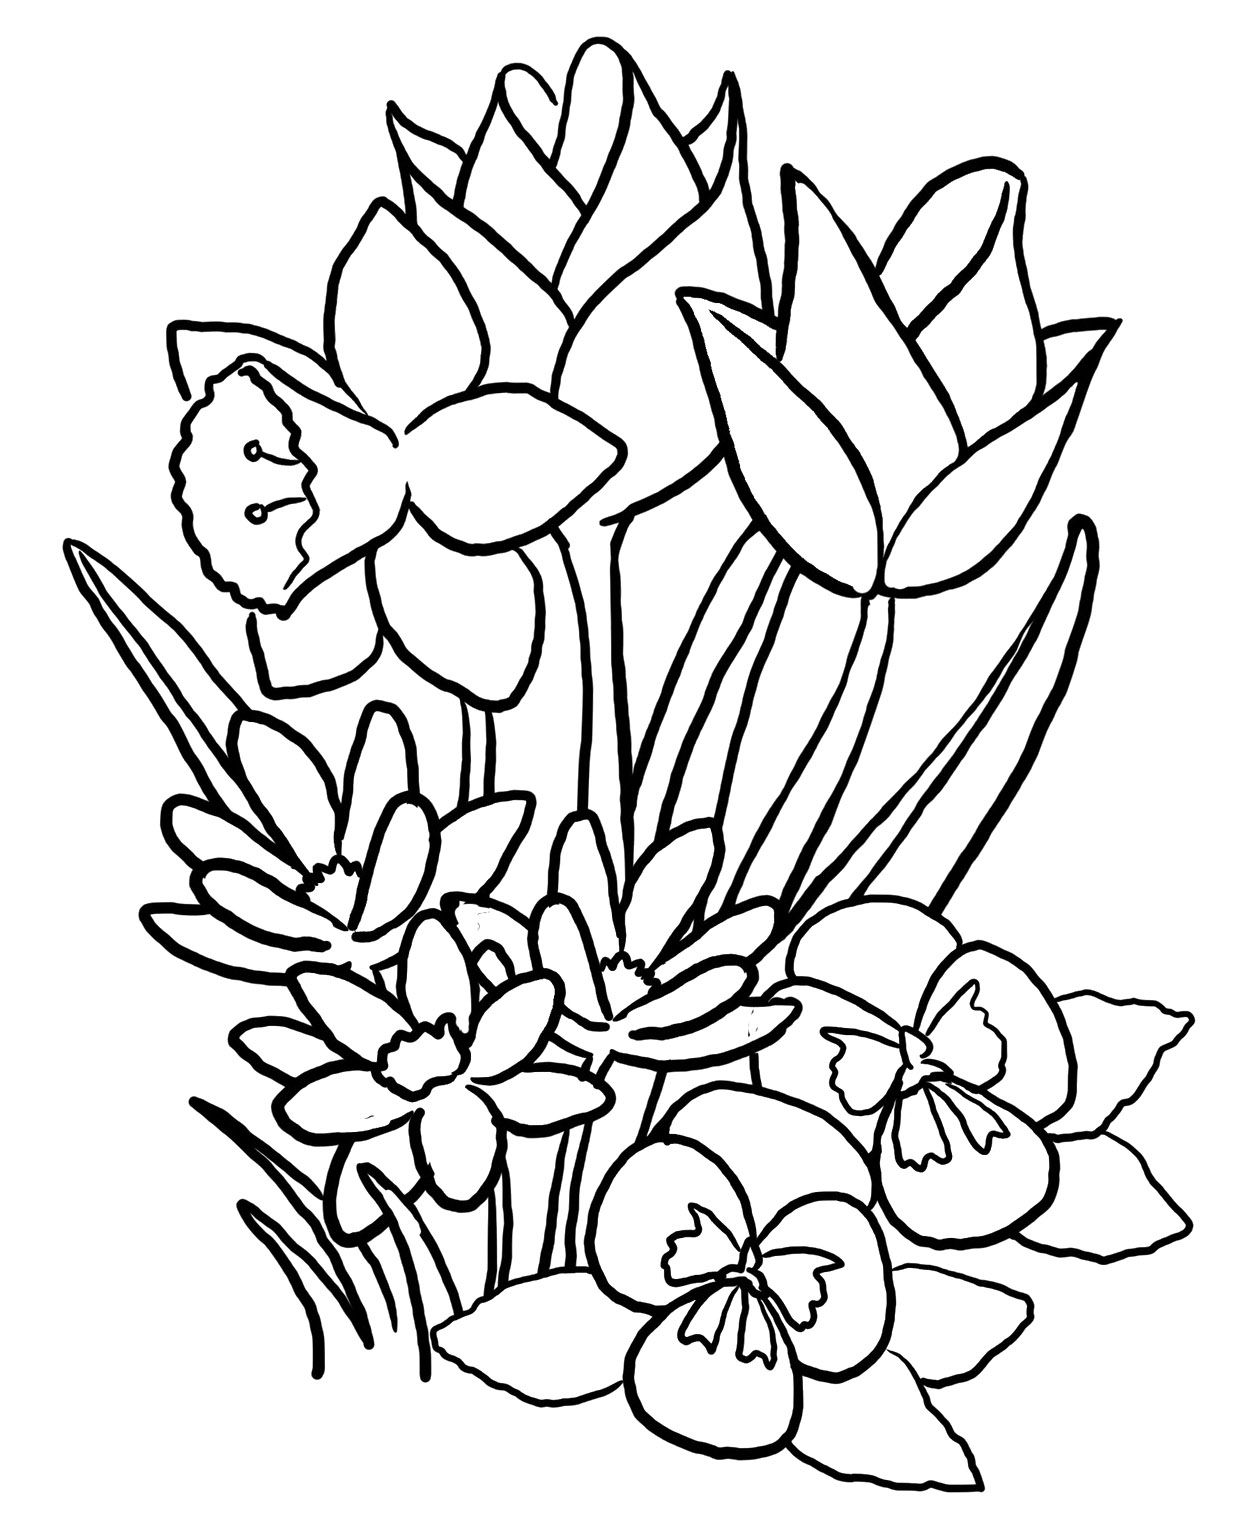 Spring coloring pages for adults free - Spring Coloring Pages Printable Spring Coloring Pages Free Spring Coloring Pages Online Spring